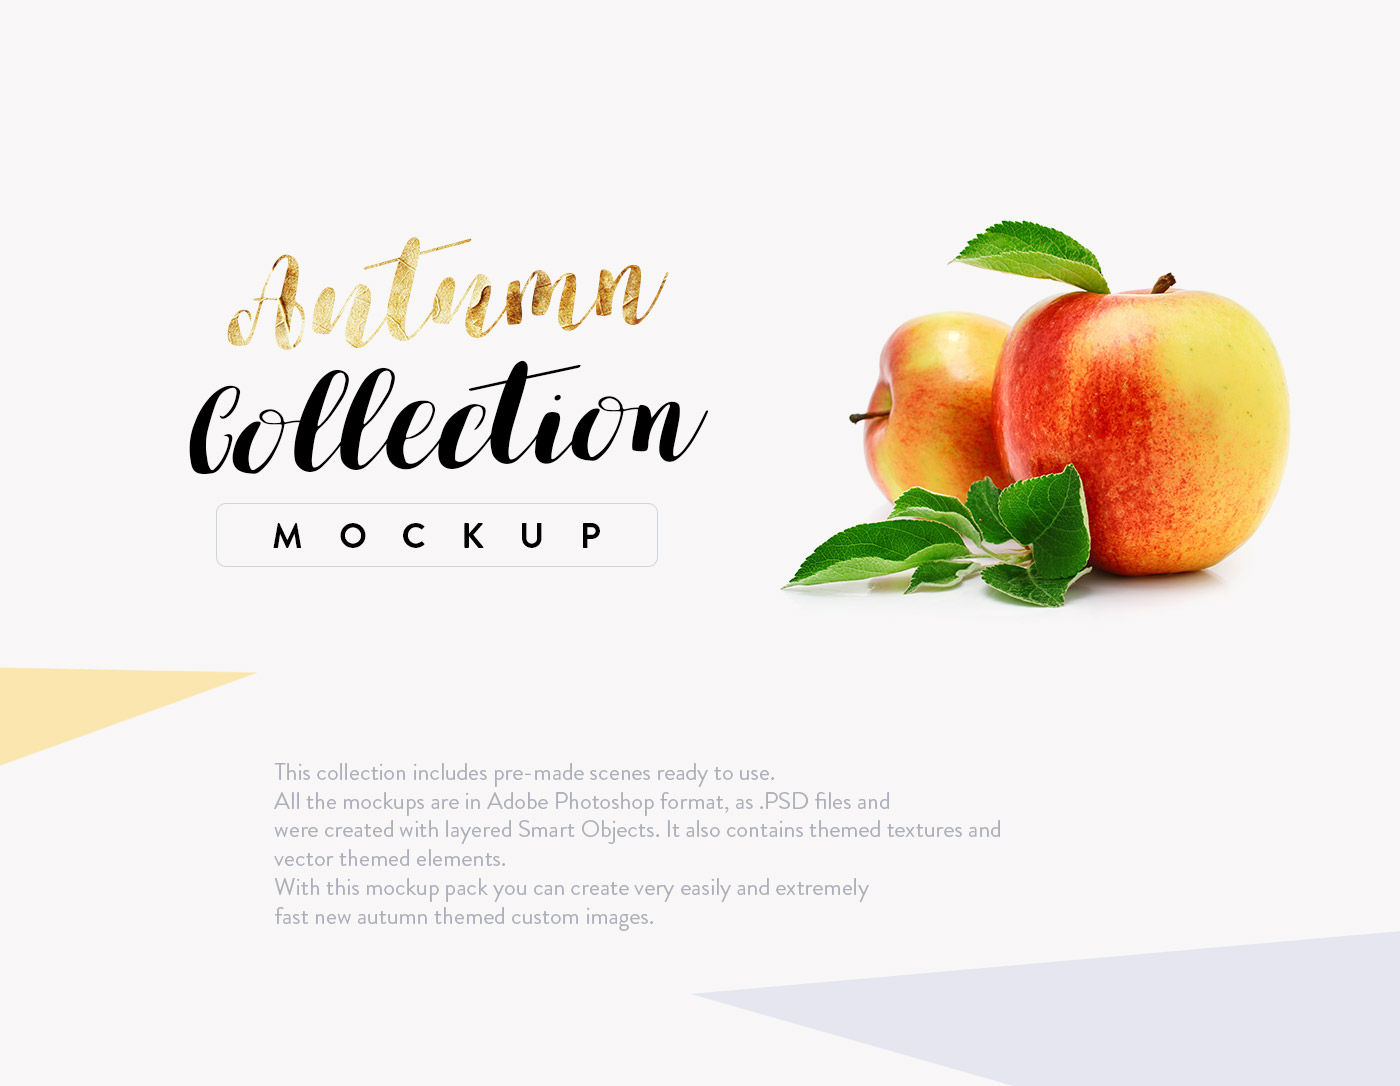 This Free Mockup Scene Creator includes Pre-made scenes ready to use.